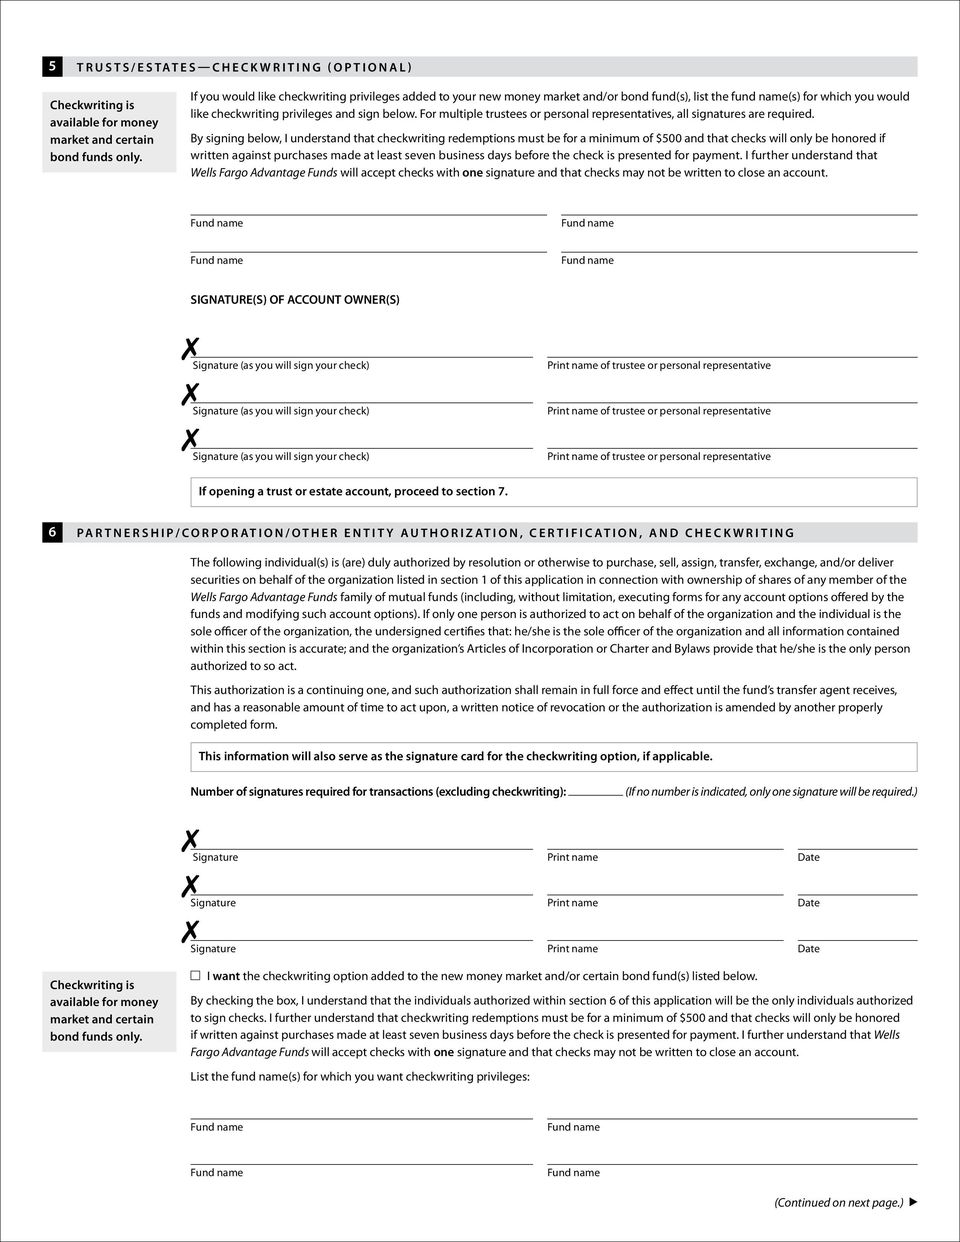 For multiple trustees or personal representatives, all signatures are required.